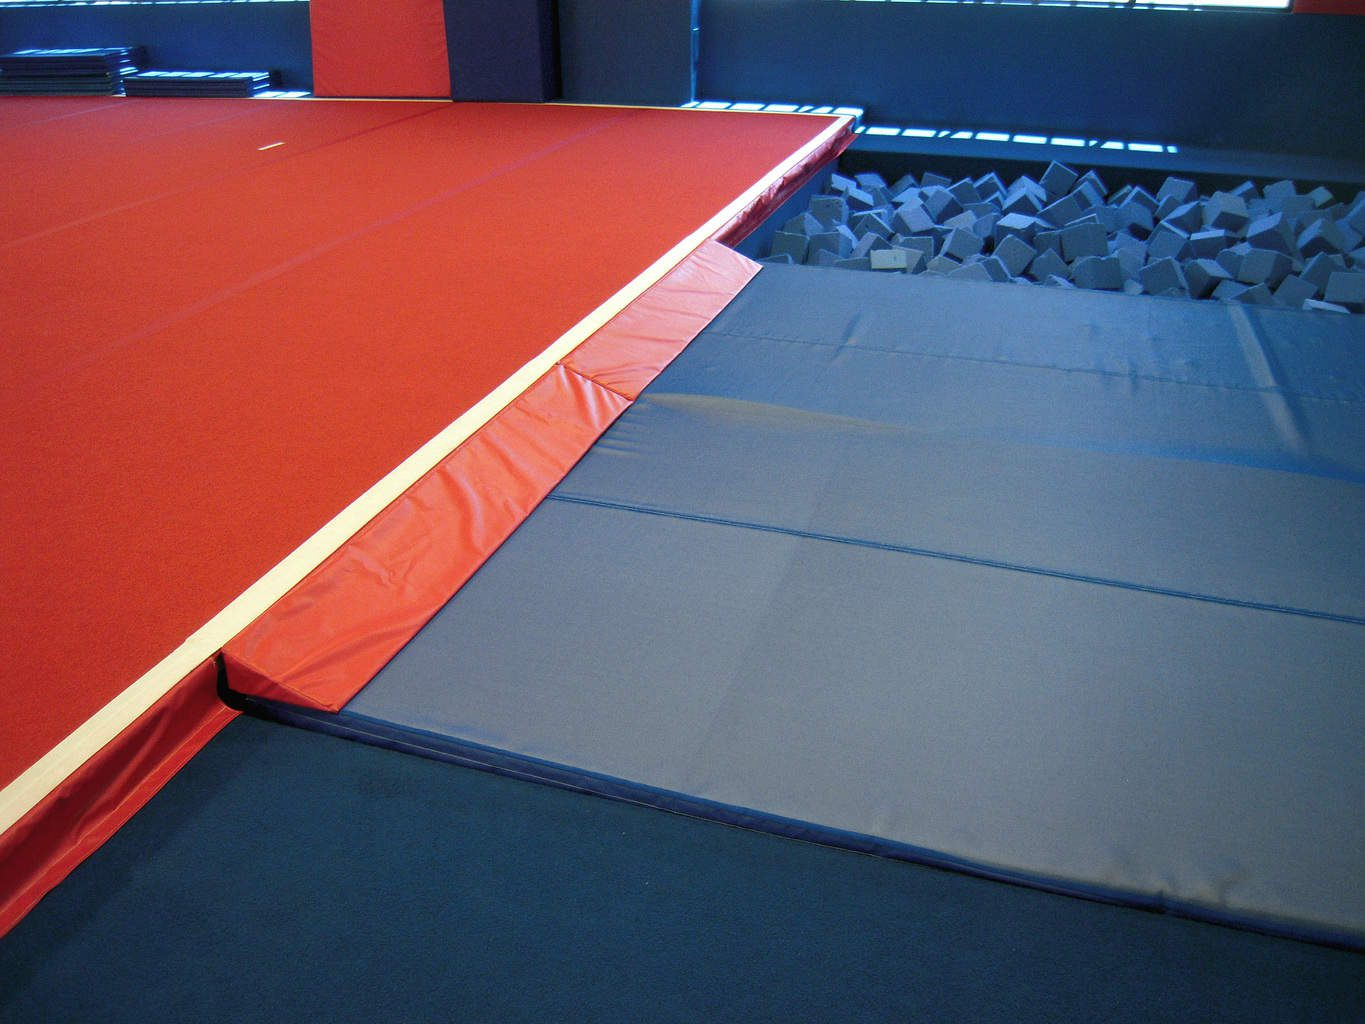 USA Youth Fitness Center Gymnastics Foam Pit